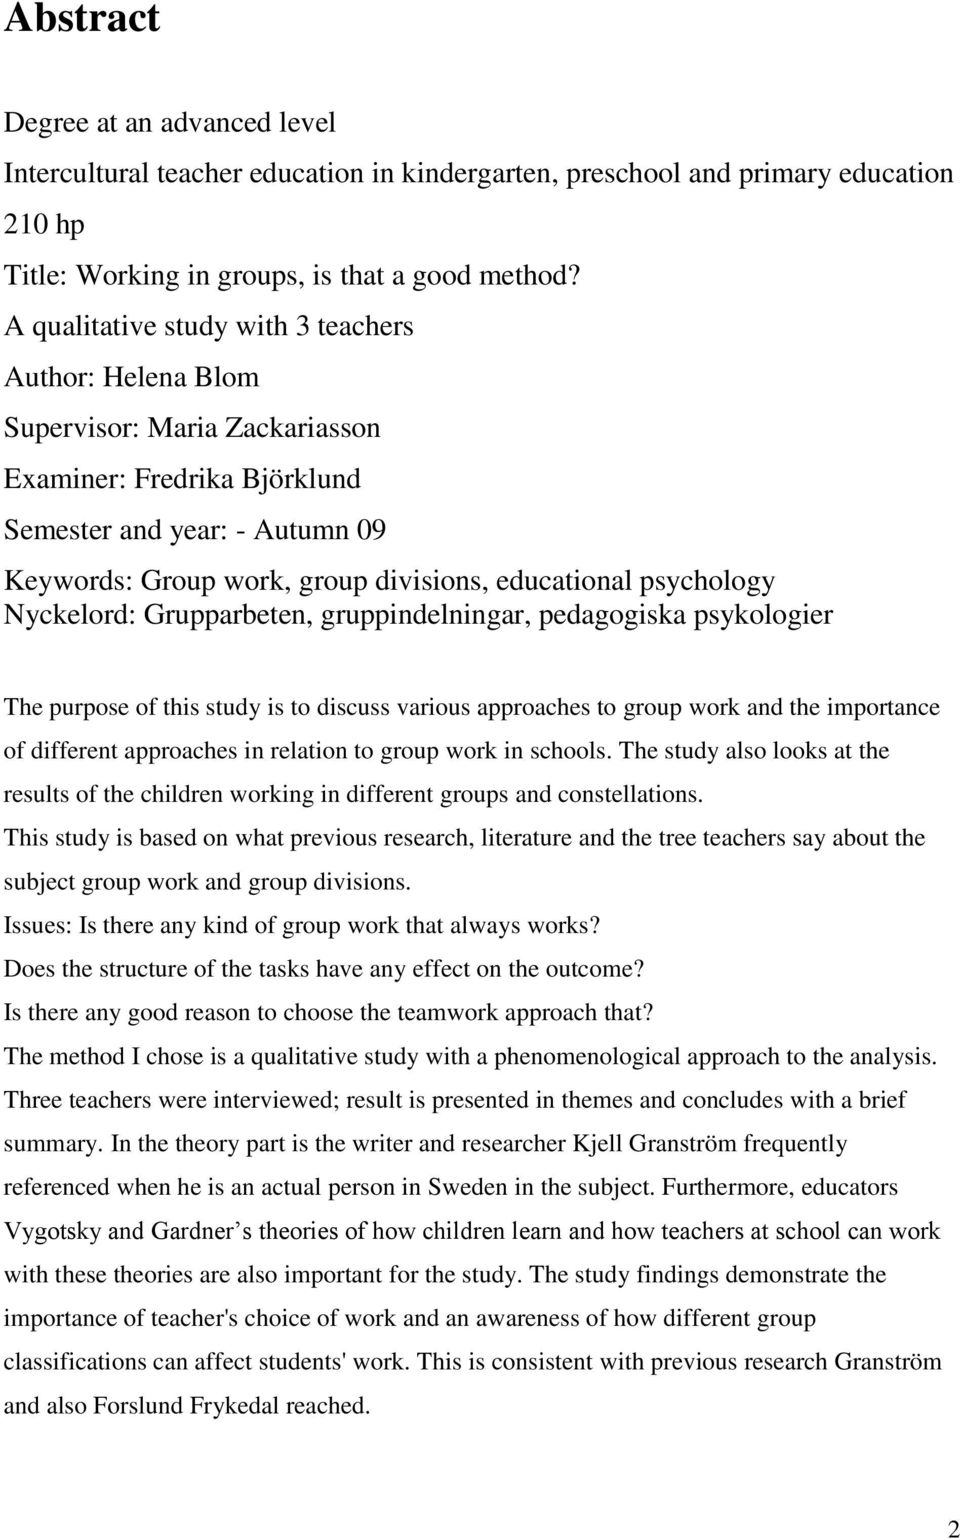 psychology Nyckelord: Grupparbeten, gruppindelningar, pedagogiska psykologier The purpose of this study is to discuss various approaches to group work and the importance of different approaches in